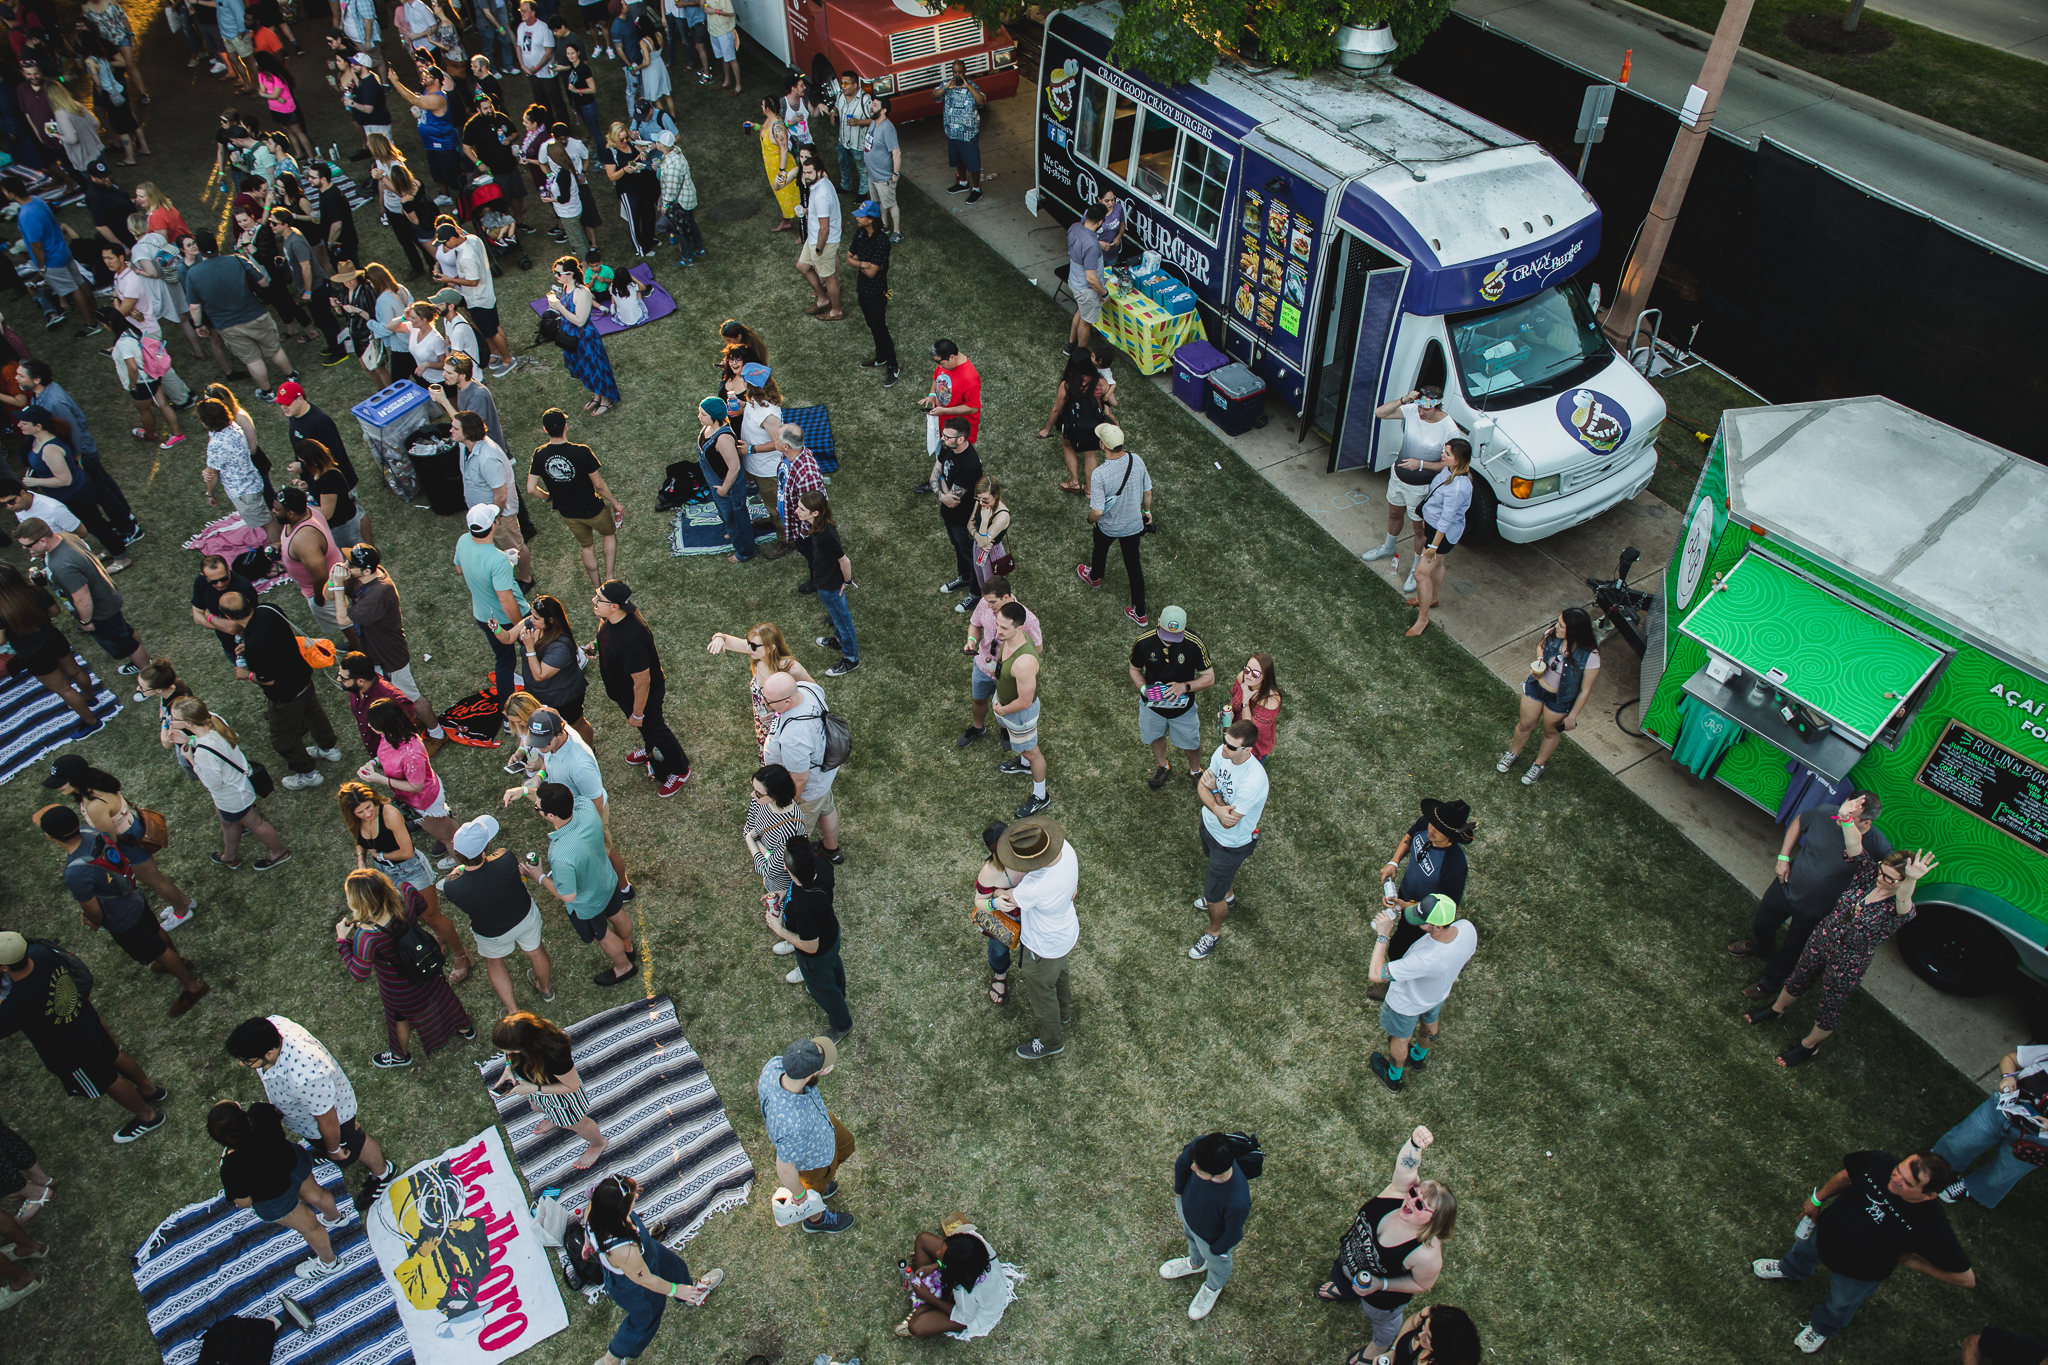 Fortress Festival's Food Lineup Includes 'Super' Churros and More From Local Favorites